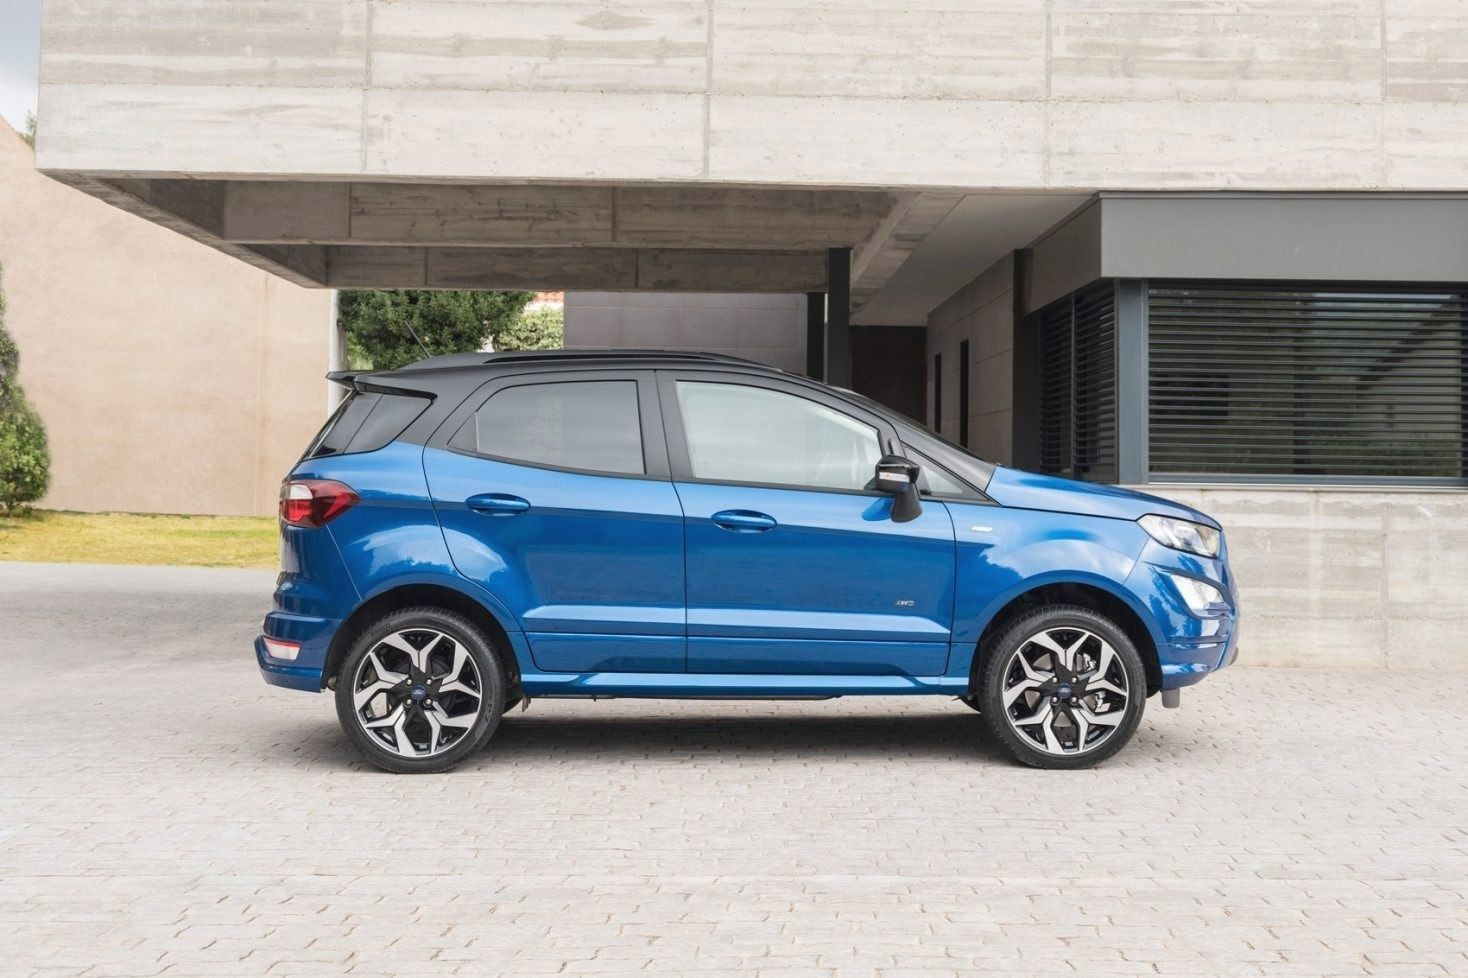 2019 Ford Eco Sport MPG 2019 ford, Ford, New cars